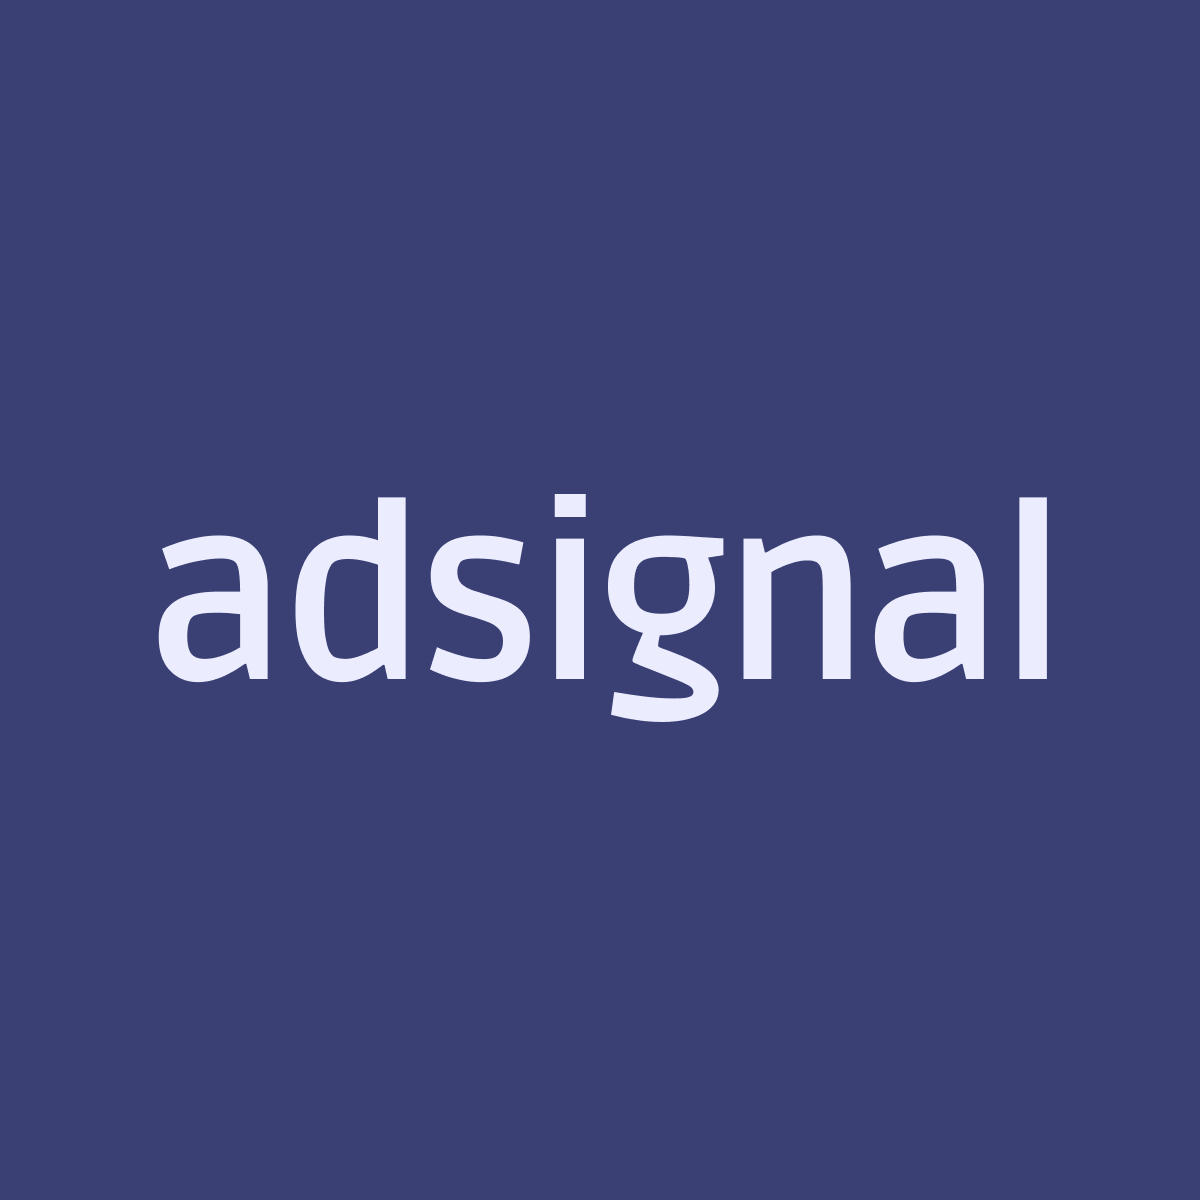 Hire Shopify Experts to integrate Adsignal app into a Shopify store